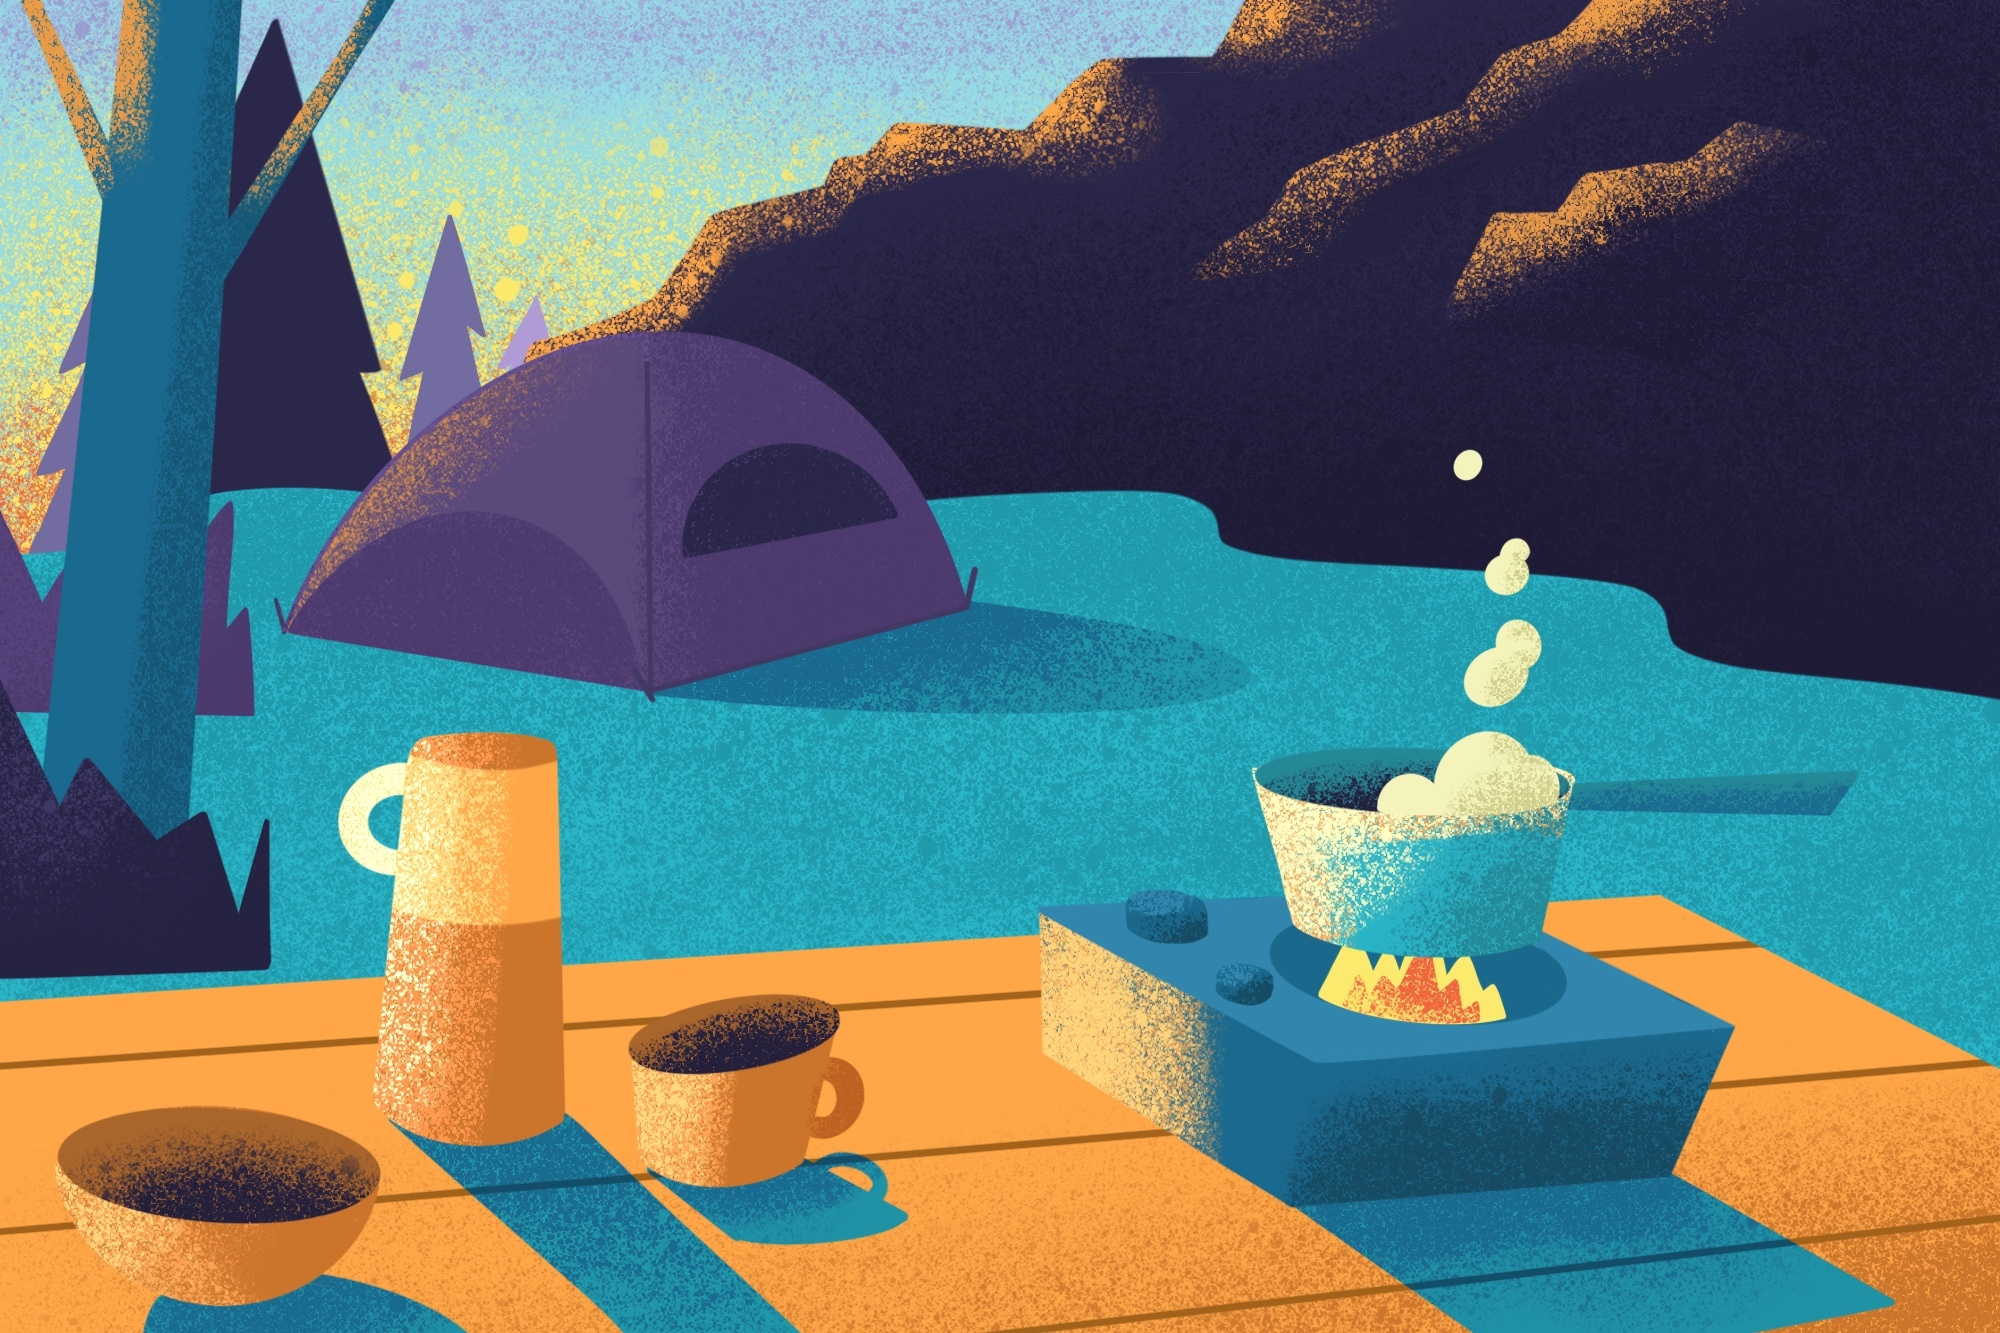 custom illustrated camping scene. A table with a thermos and drinks and pot bubbling on a single burner in the foreground with a pitched tent nestled into the hillside in the background.